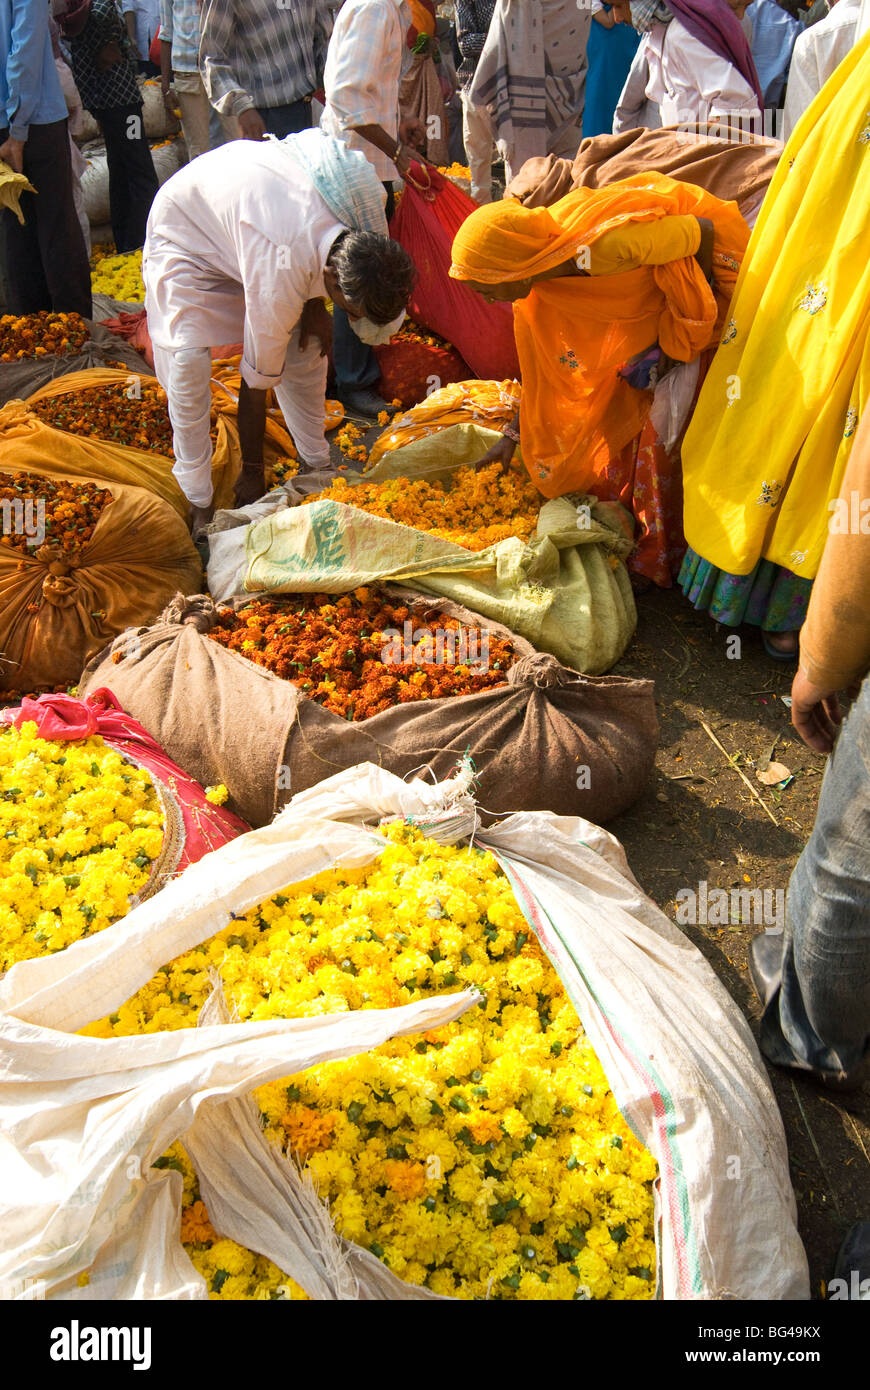 Woman buying marigolds tied up in cloth and sacking, flower market, Bari Chaupar, Jaipur, Rajasthan, India, Asia Stock Photo